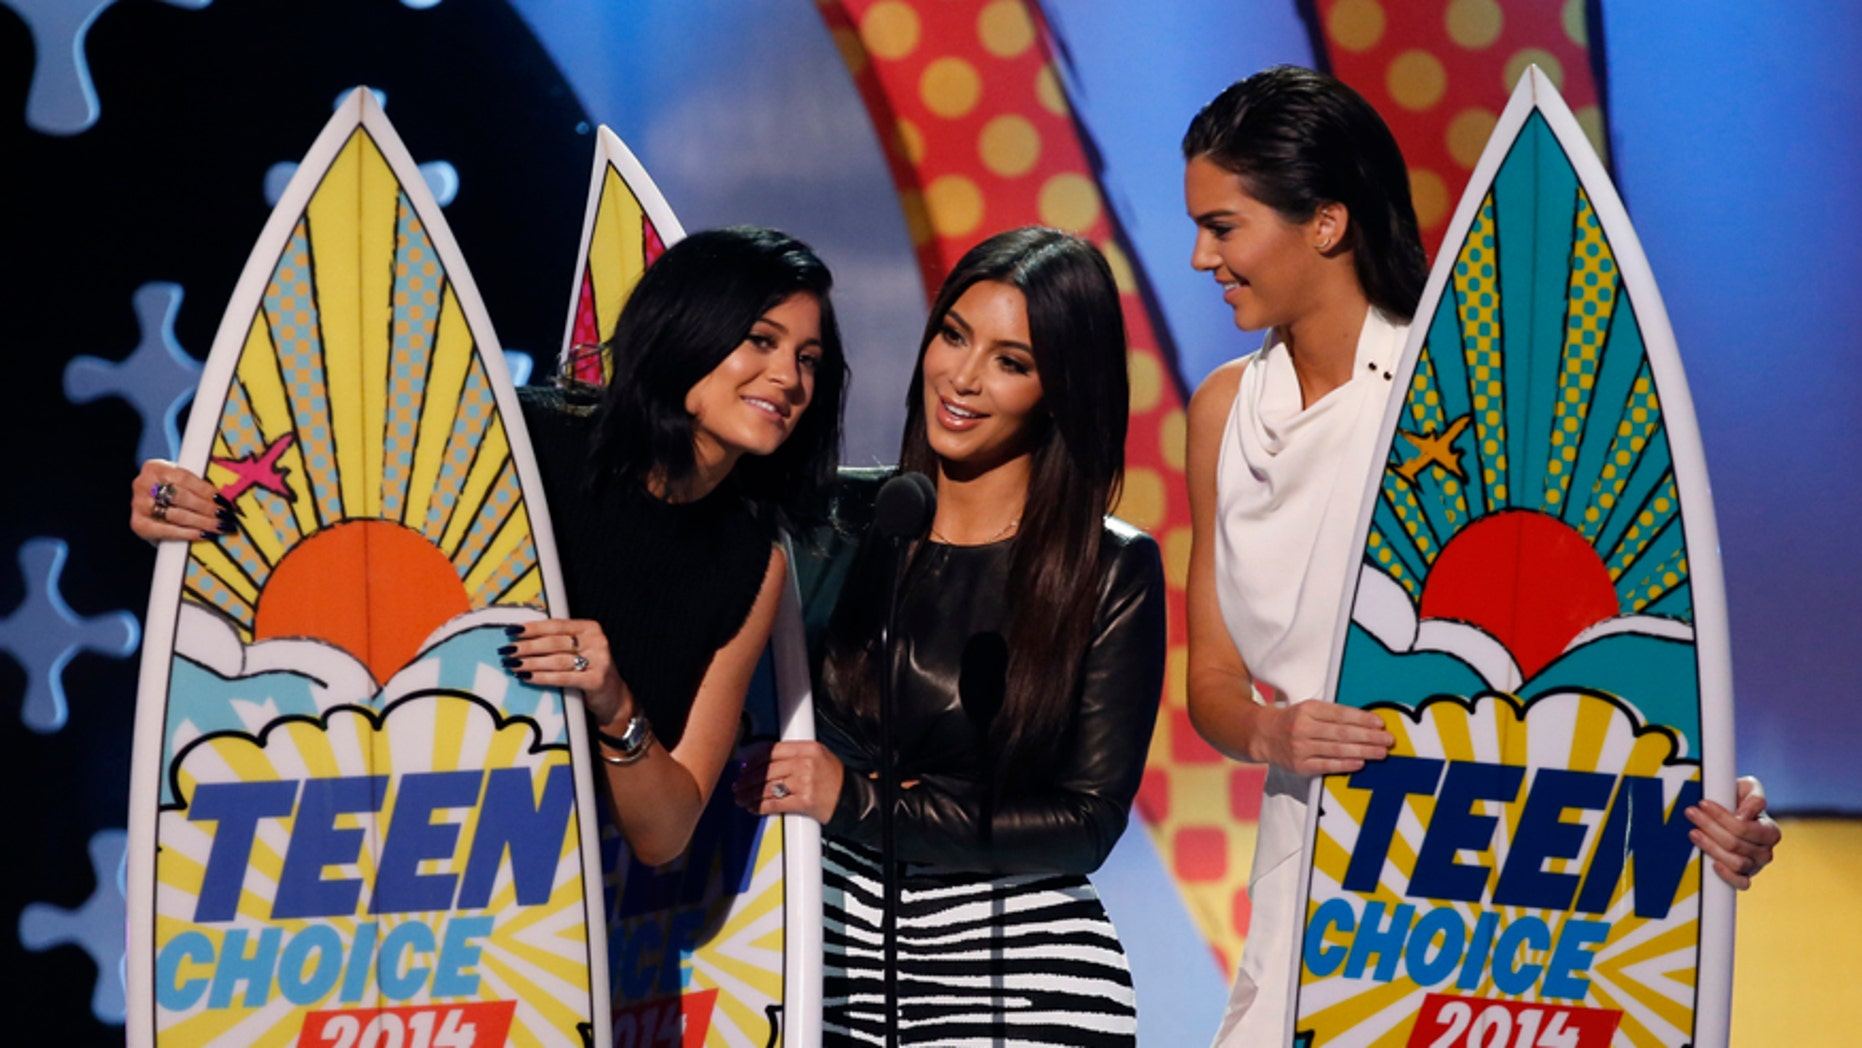 """Kylie Jenner, Kim Kardashian and Kendall Jenner accept the choice reality show award for """"Keeping Up with the Kardashians"""" during the Teen Choice Awards 2014 in Los Angeles, California August 10, 2014."""